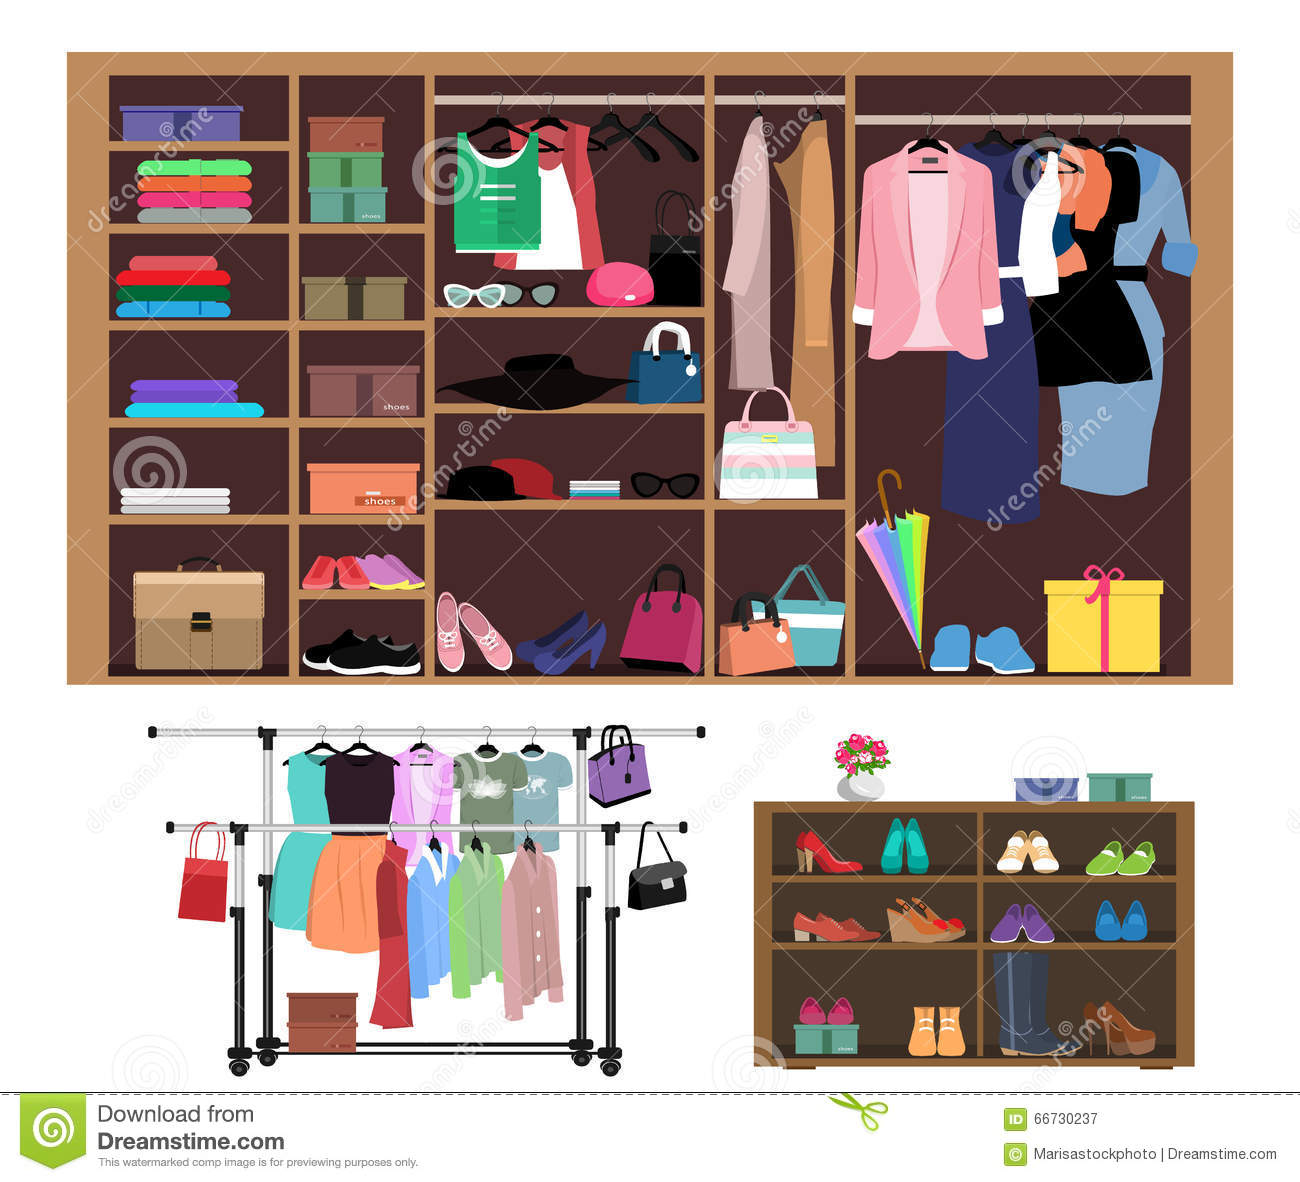 Flat style concept of wardrobe for women. Stylish closet with women s fashion, clothes, shoes and bags.